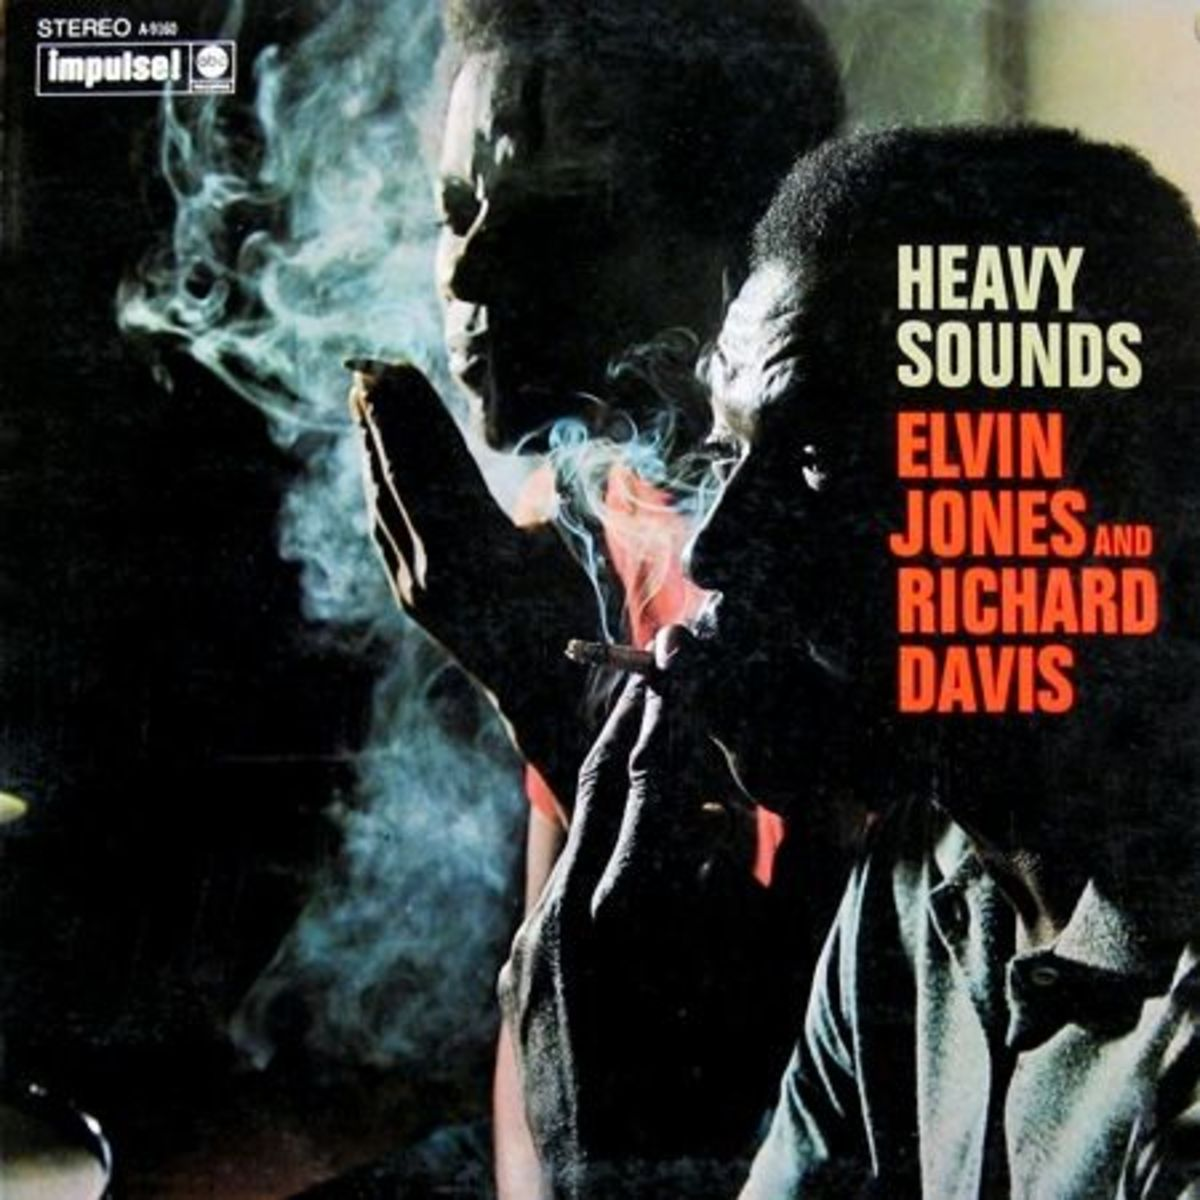 "Elvin Jones & Richard Davis ""Heavy Sounds"" Impulse Records A-9160 12"" LP Vinyl Record (1968) Album Cover Design by Robert & Barbara Flynn, Photo by Charles Stewart"